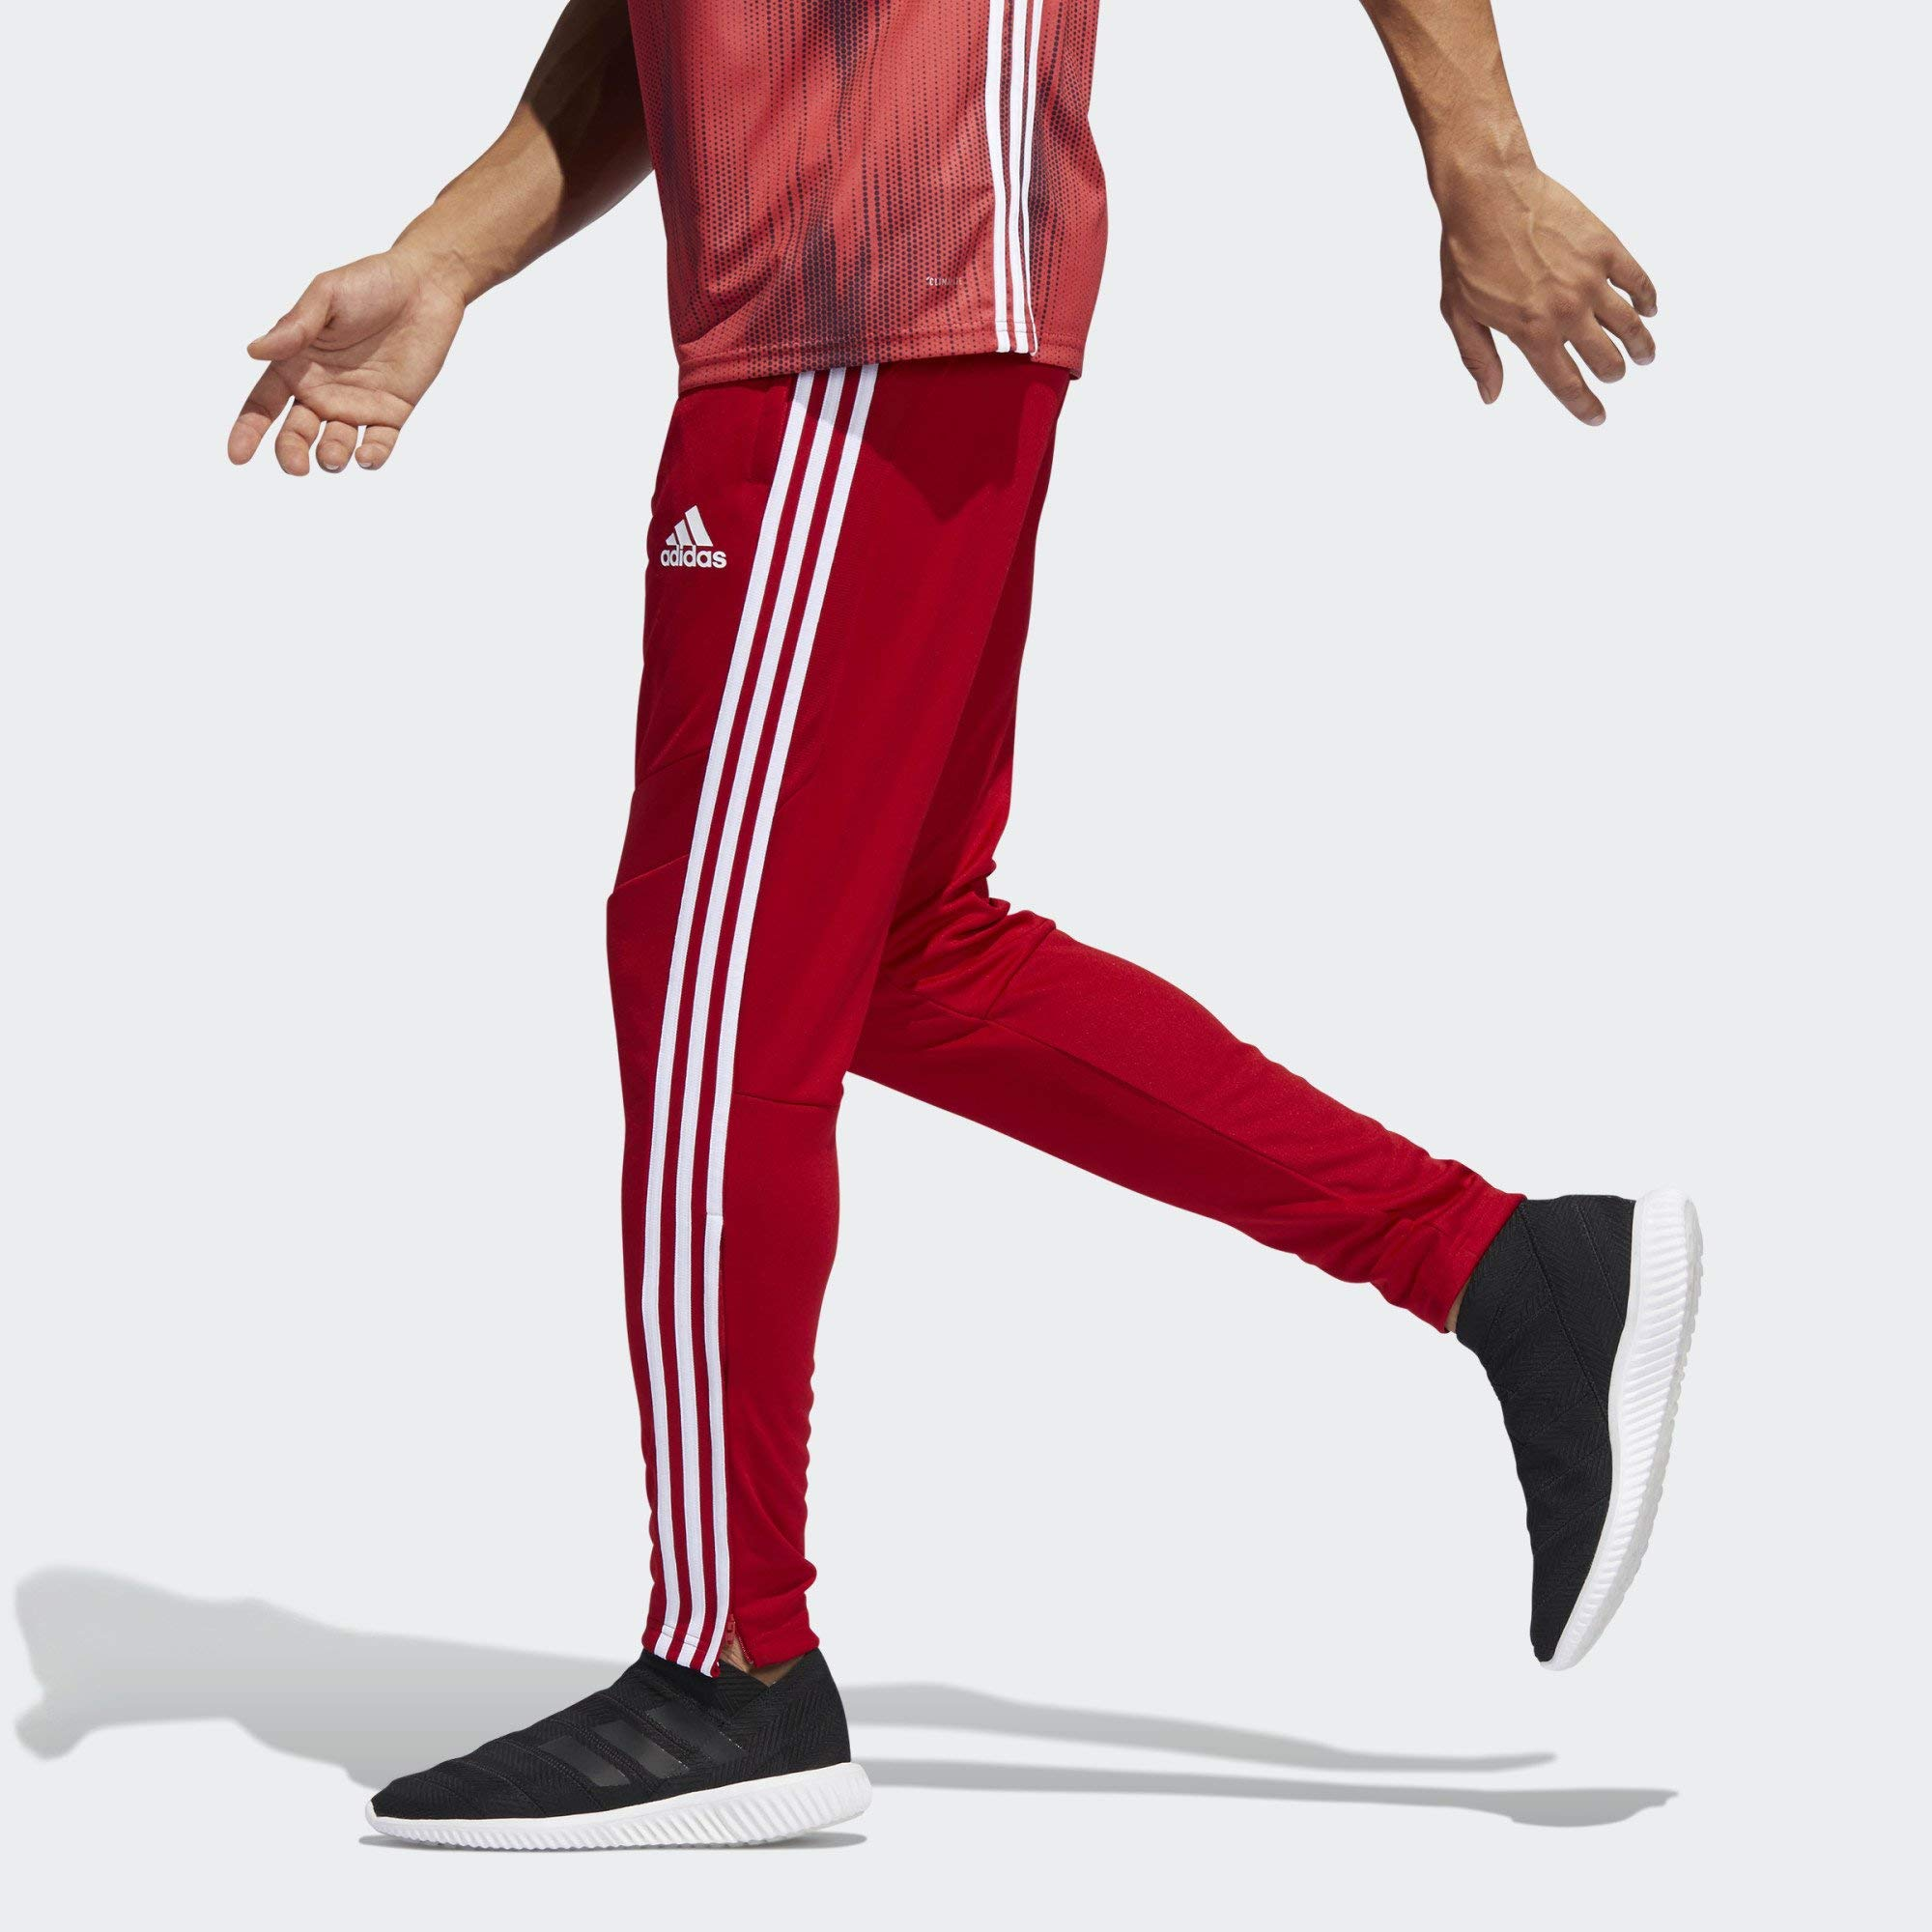 adidas Men's Soccer Tiro 19 Training Pant, Power Red/White, 3X-Large by adidas (Image #4)